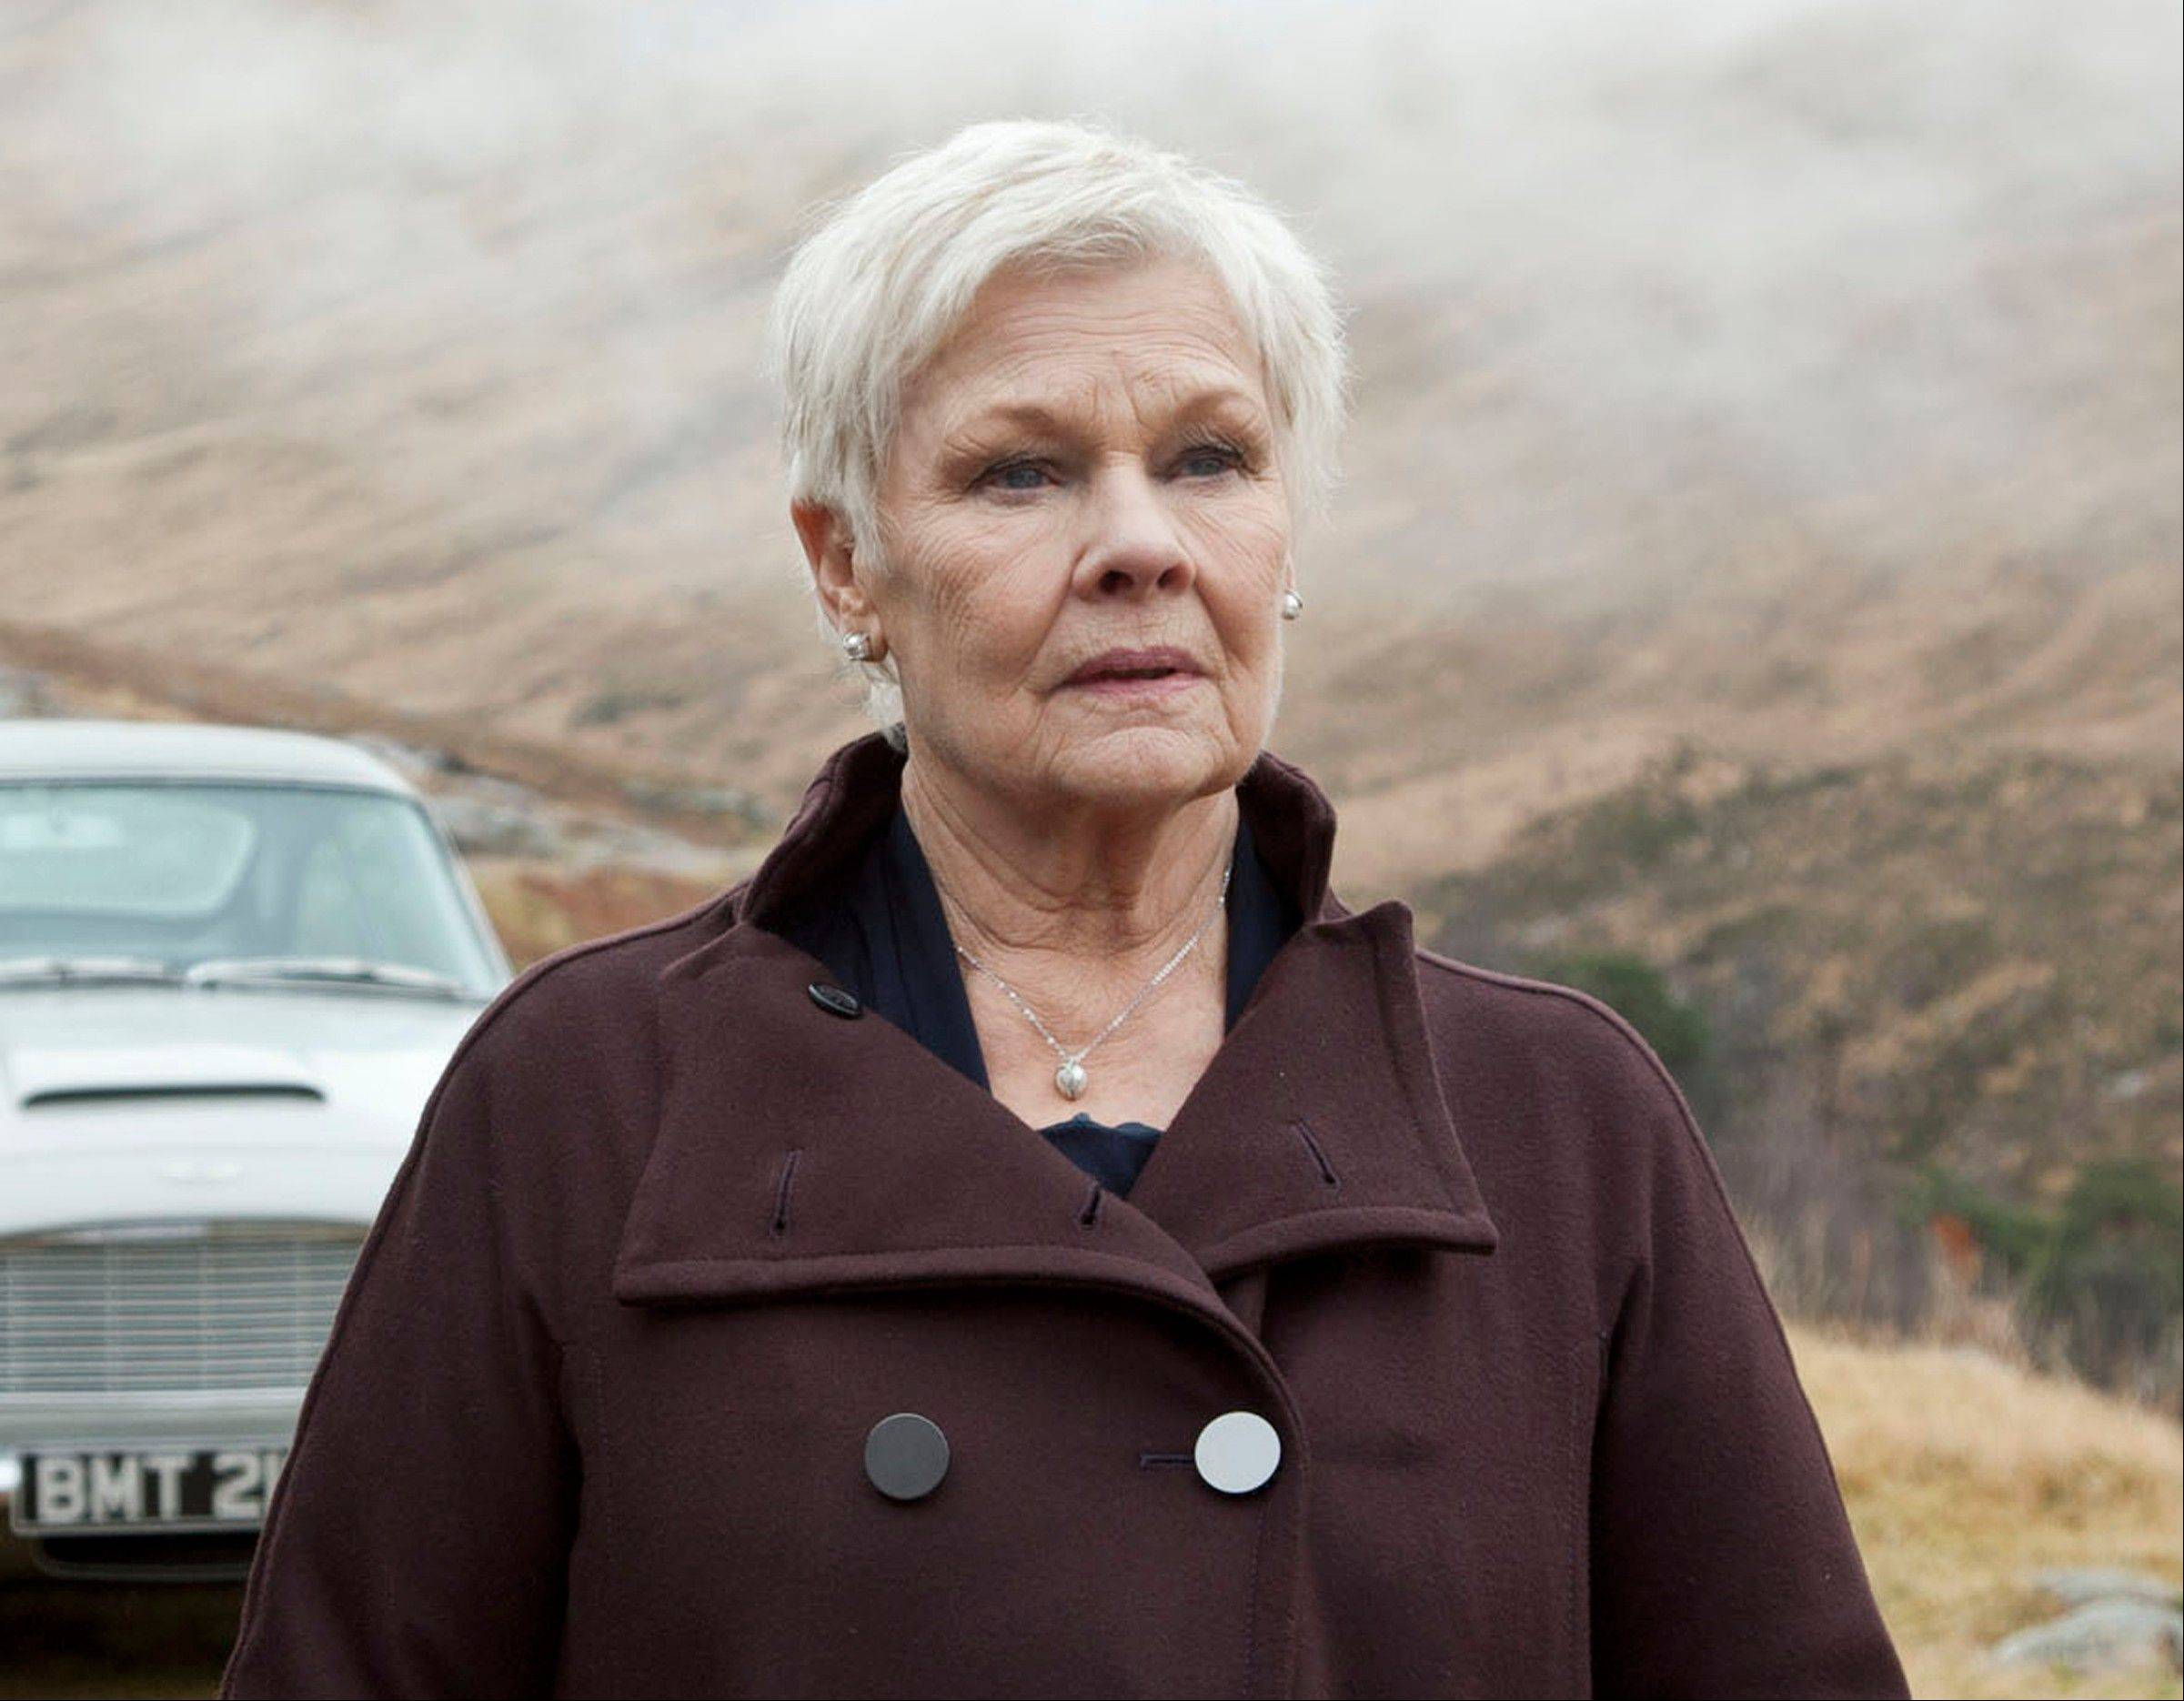 Judi Dench resurrected her James Bond character M in a video released Thursday as part of the Weinstein Co.�s appeal to the Motion Picture Association of America to change the rating of Dench�s latest film, �Philomena.�